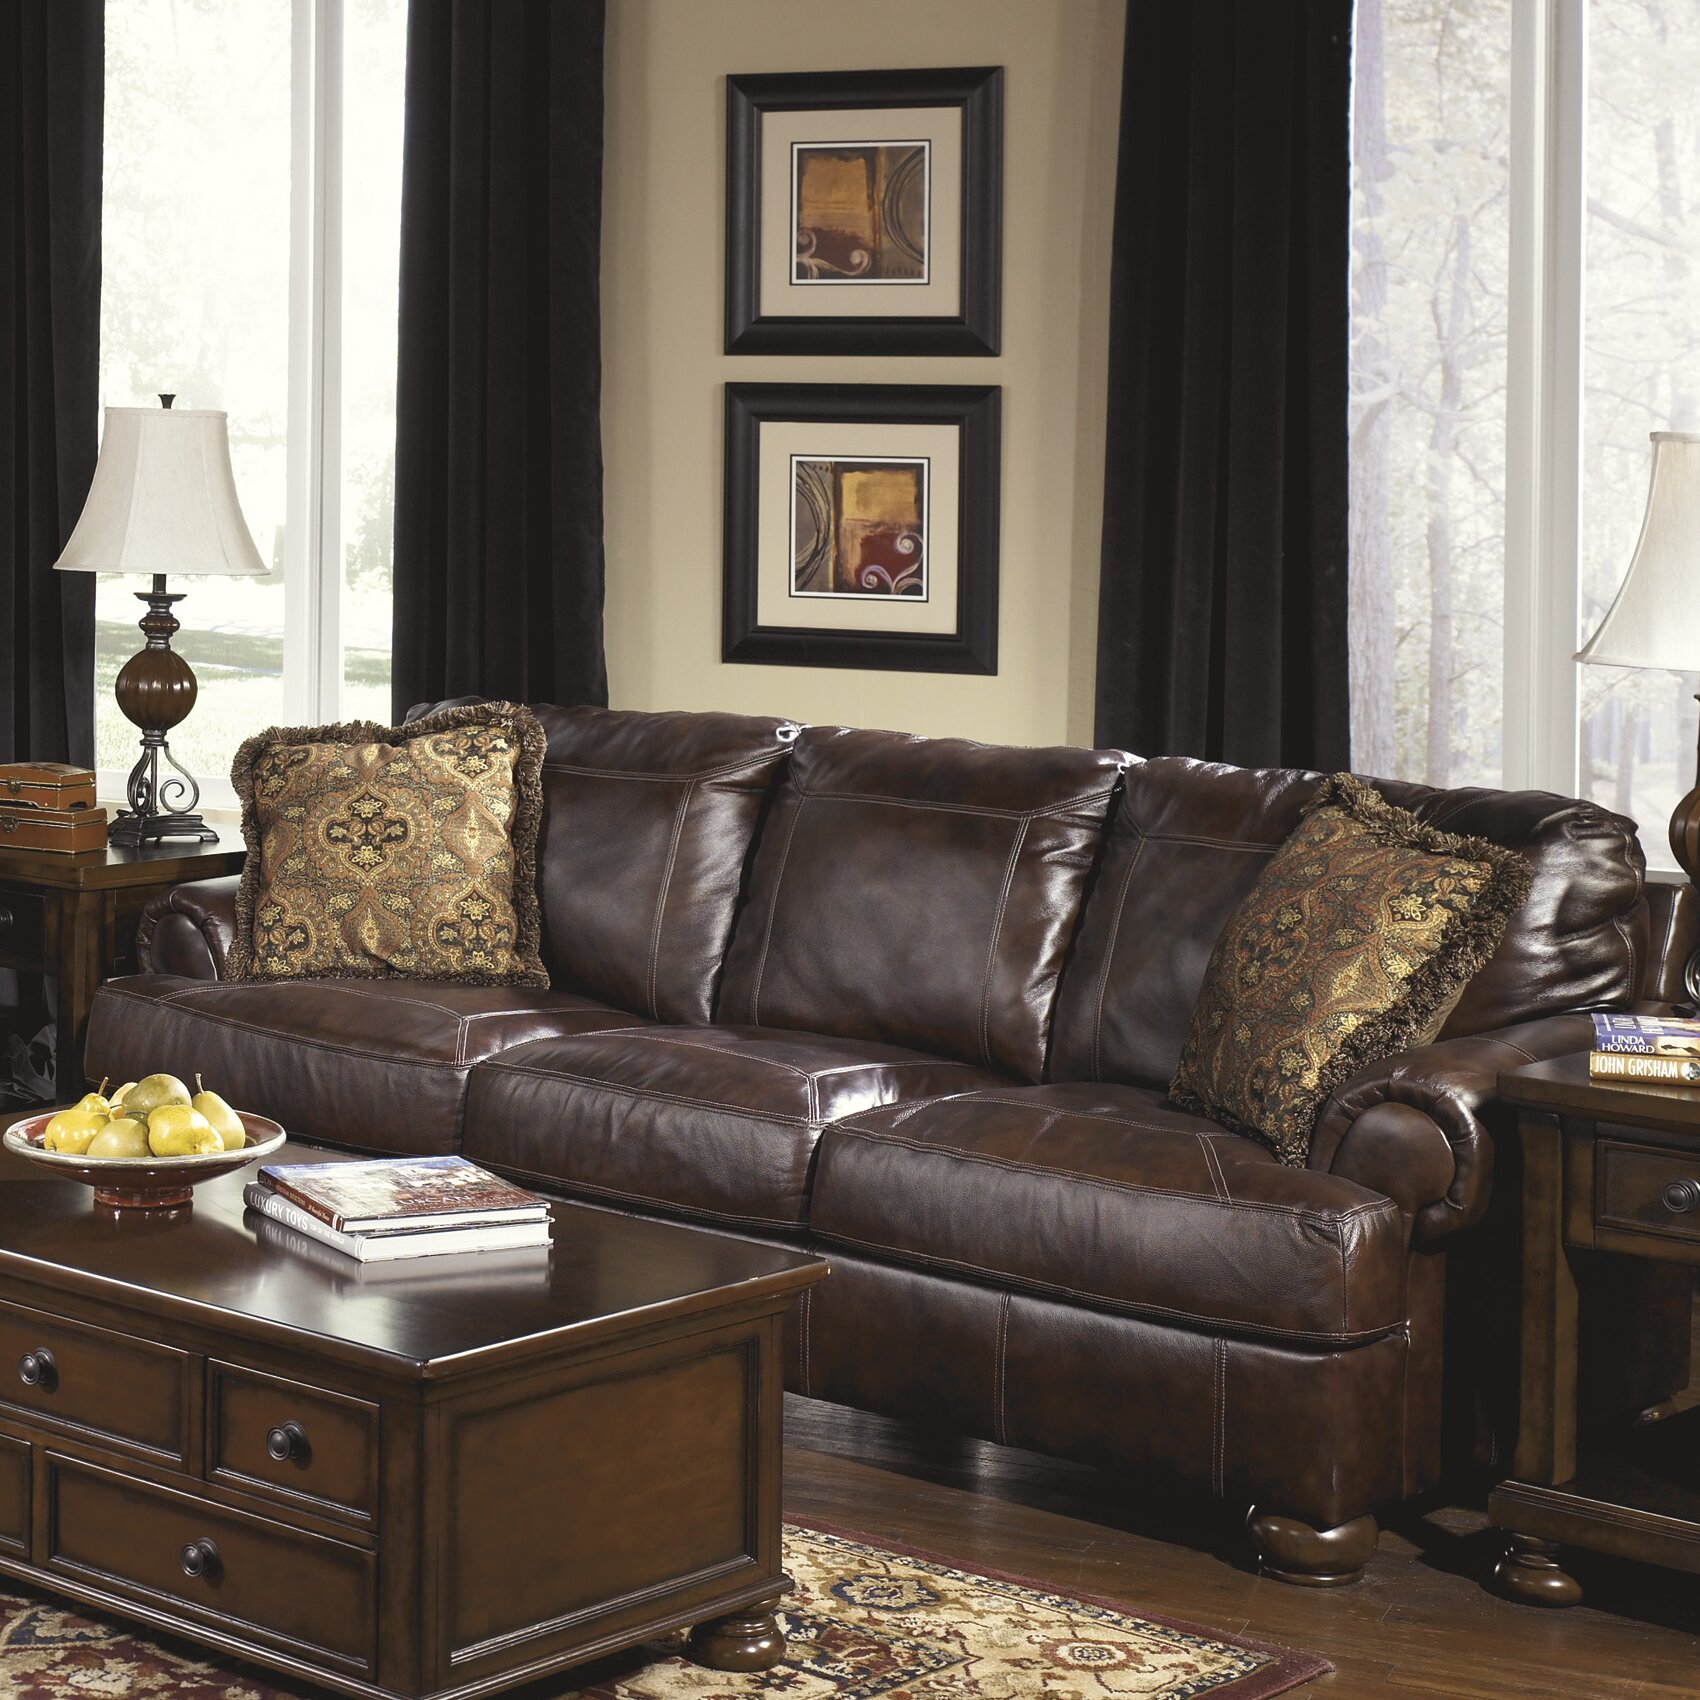 Ashley Signature Collection: Signature Design By Ashley Heath Living Room Collection